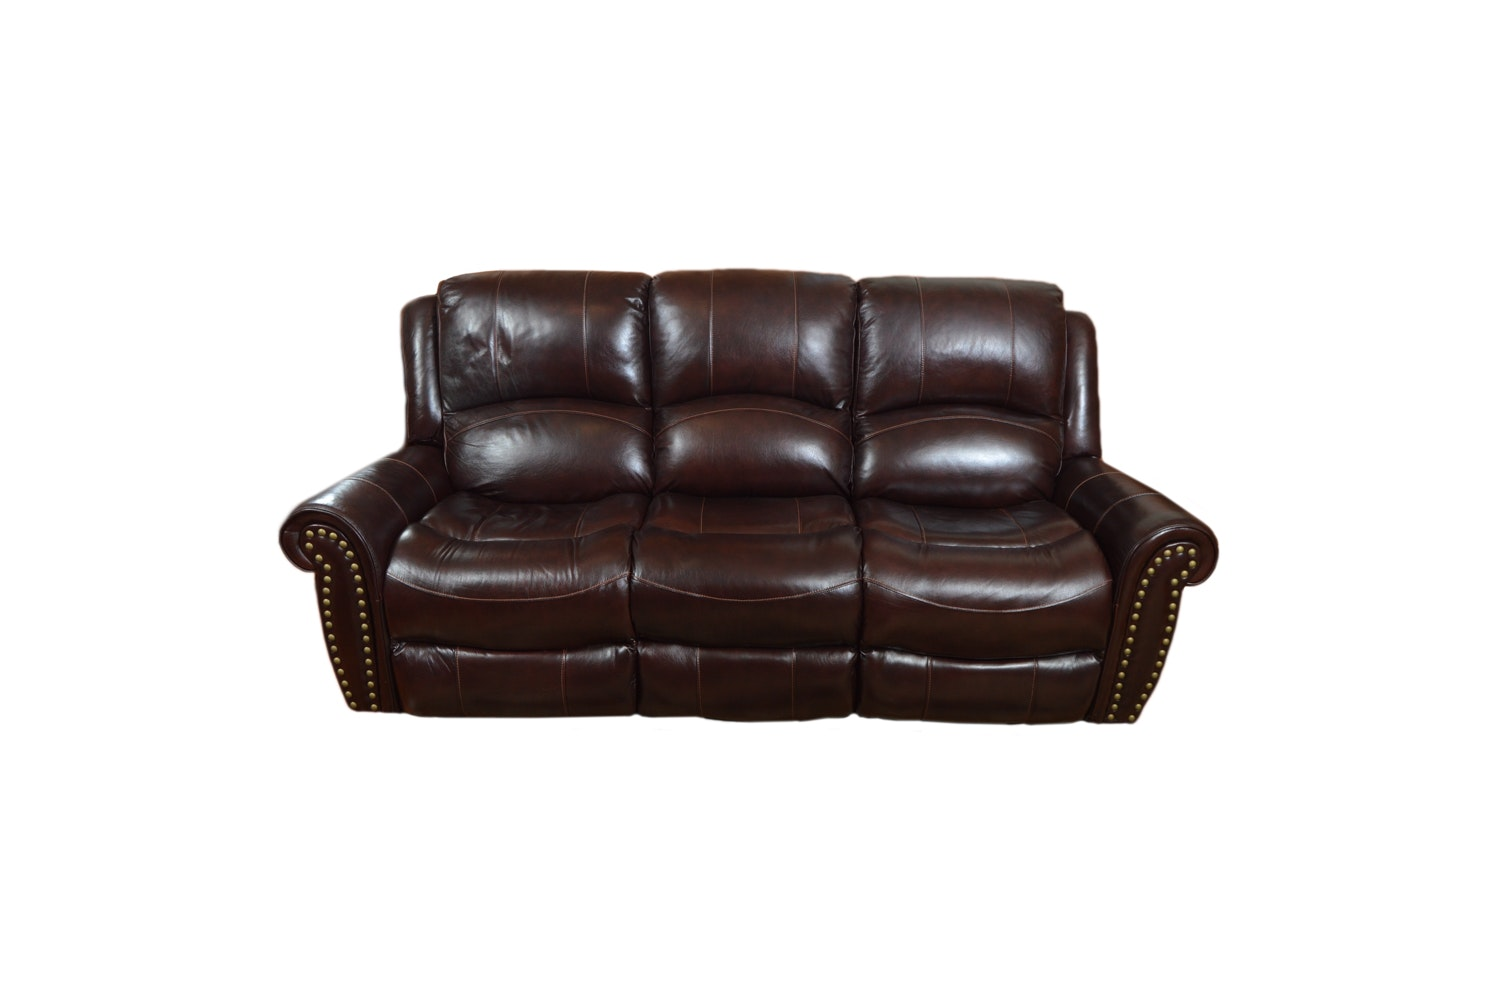 Dark Faux Leather Recliner Sofa